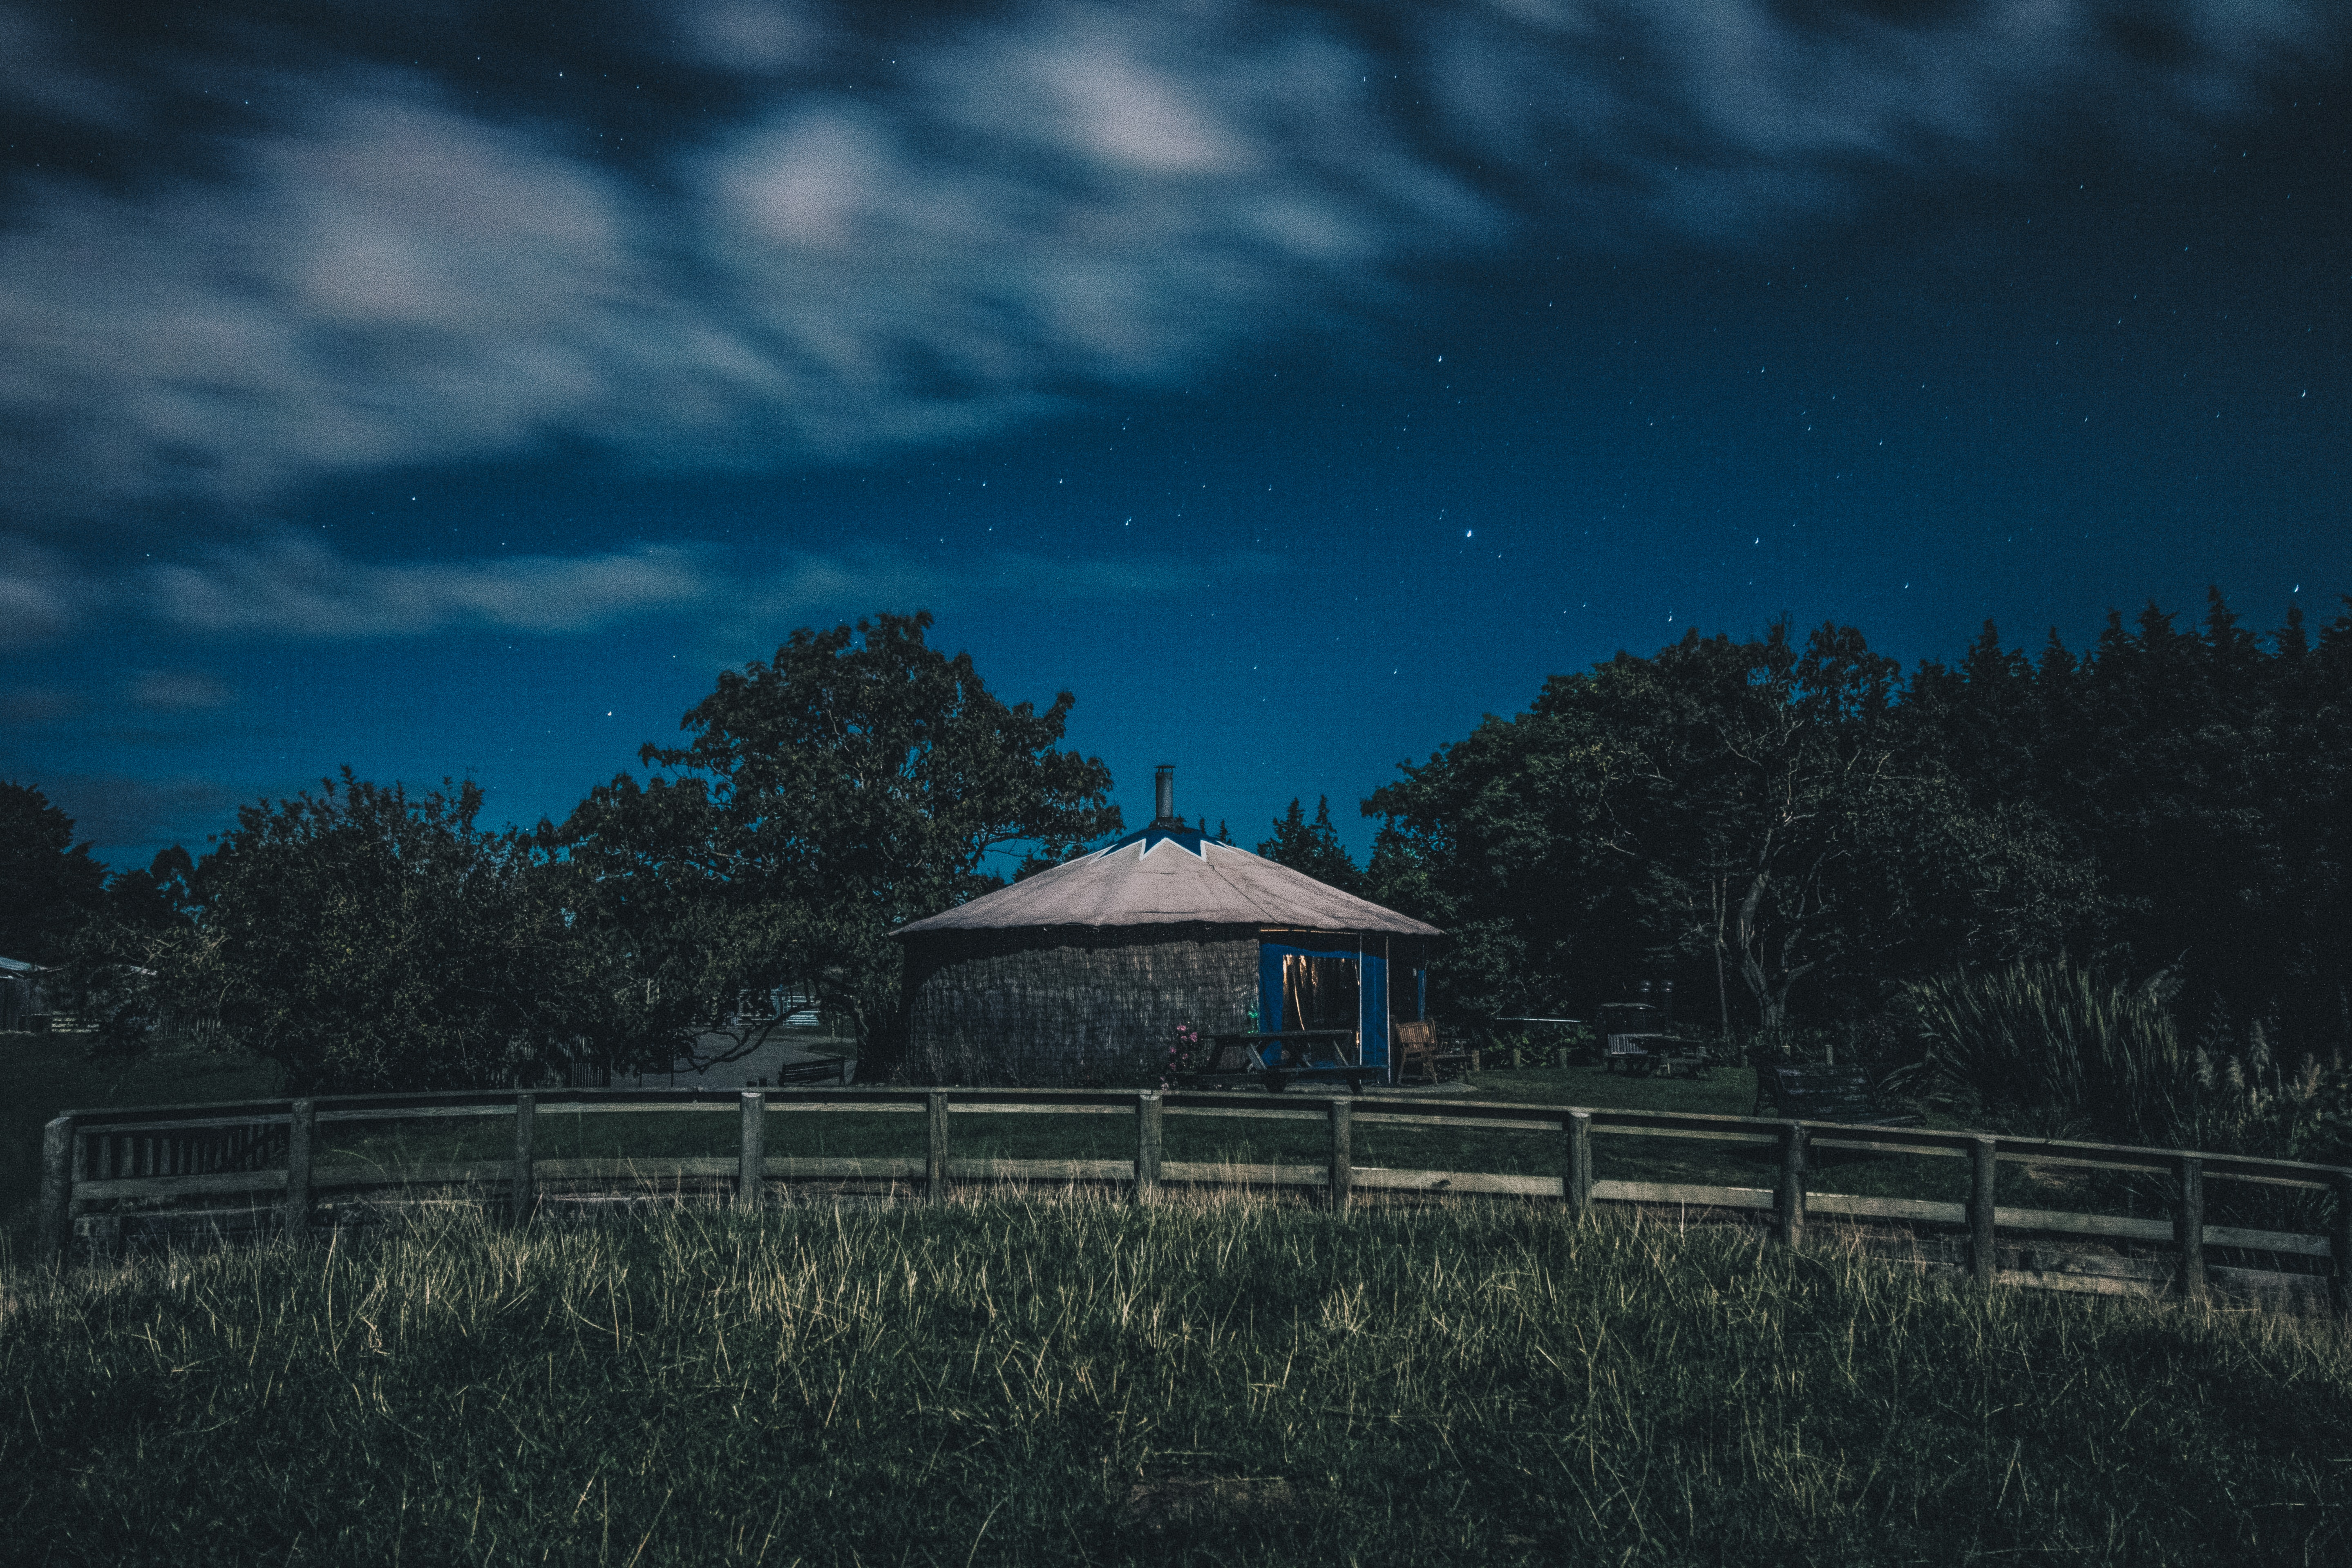 brown hut on hill under white clouds during night time